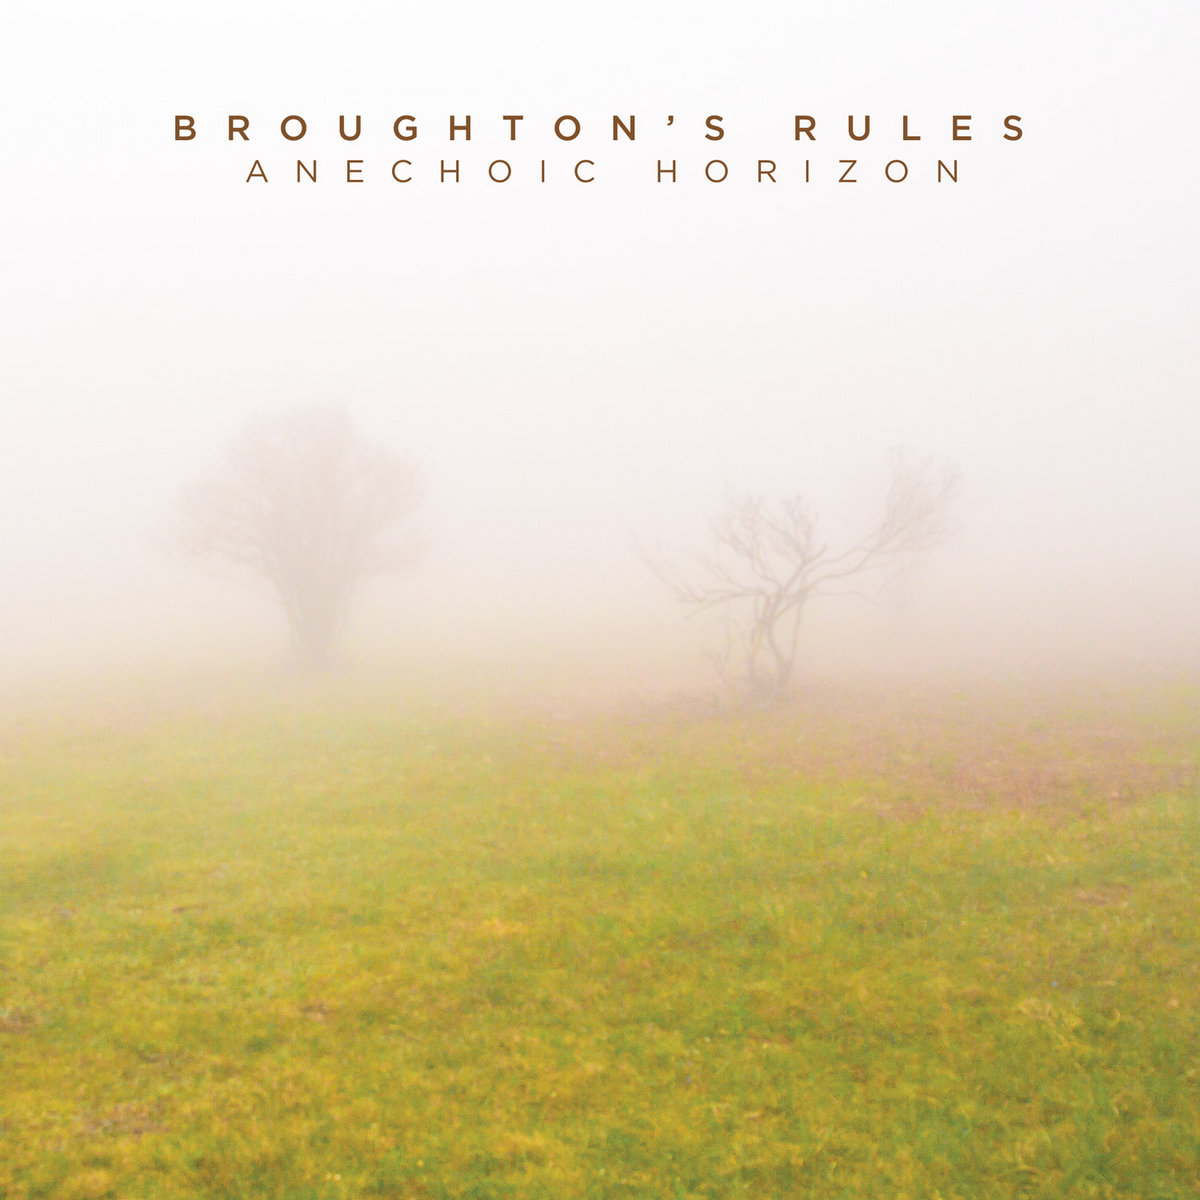 Broughton's Rules - Anechoic Horizon (2014)